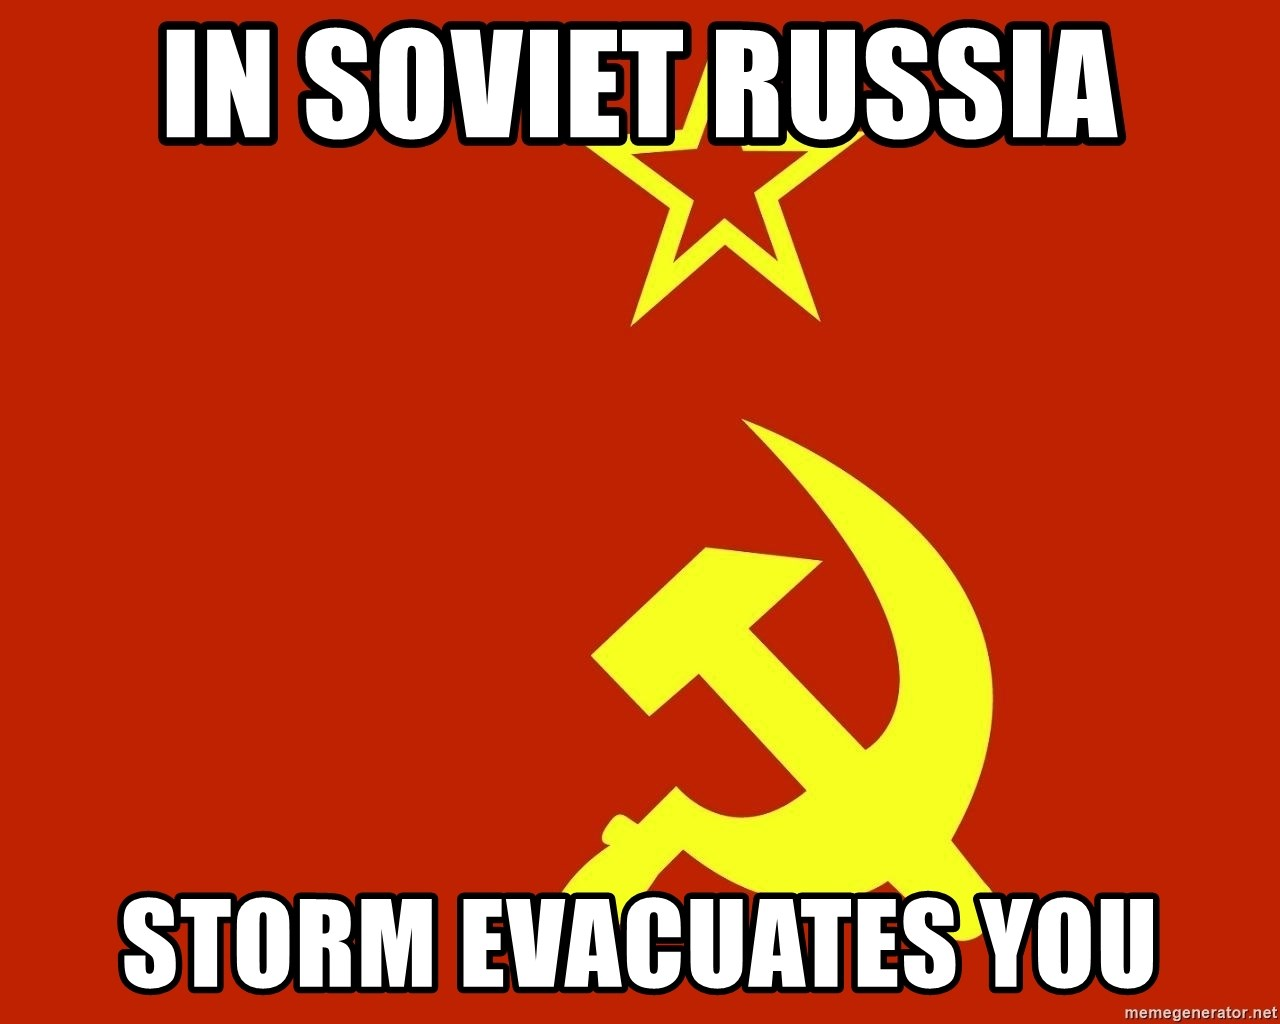 In Soviet Russia - In Soviet Russia storm evacuates YOU